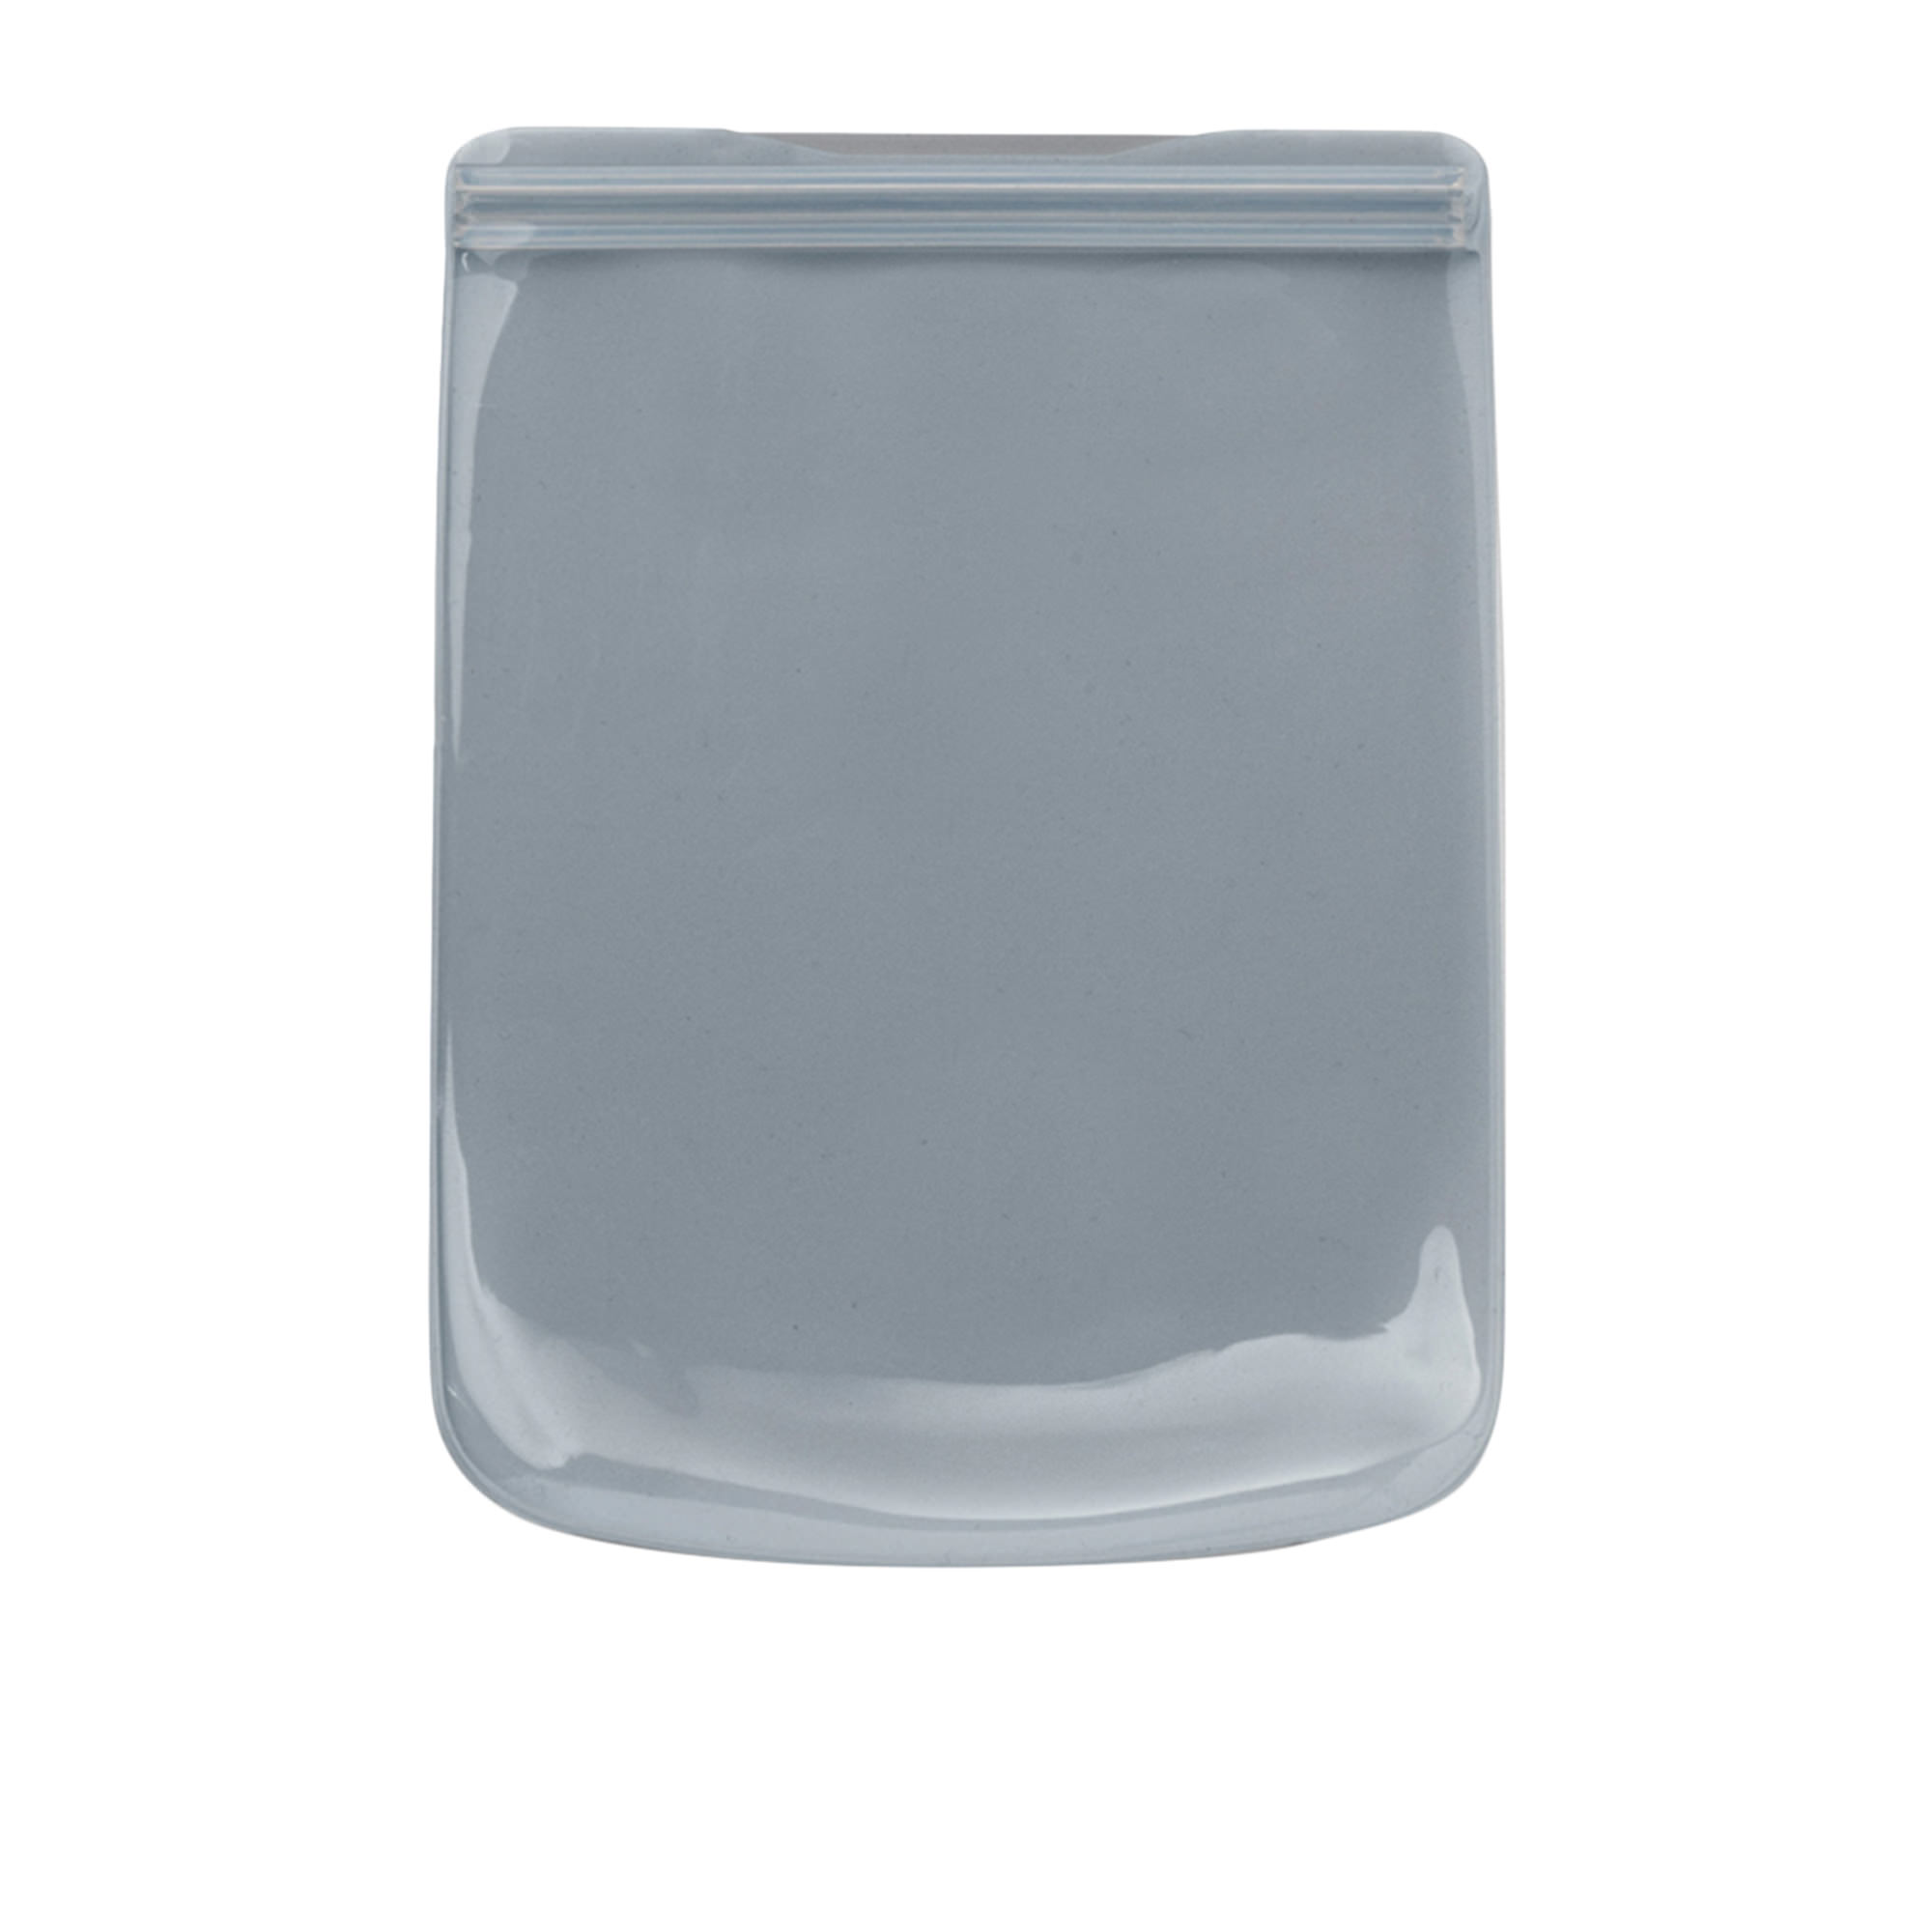 W&P Porter Reusable Silicone Bag 1.4L Slate